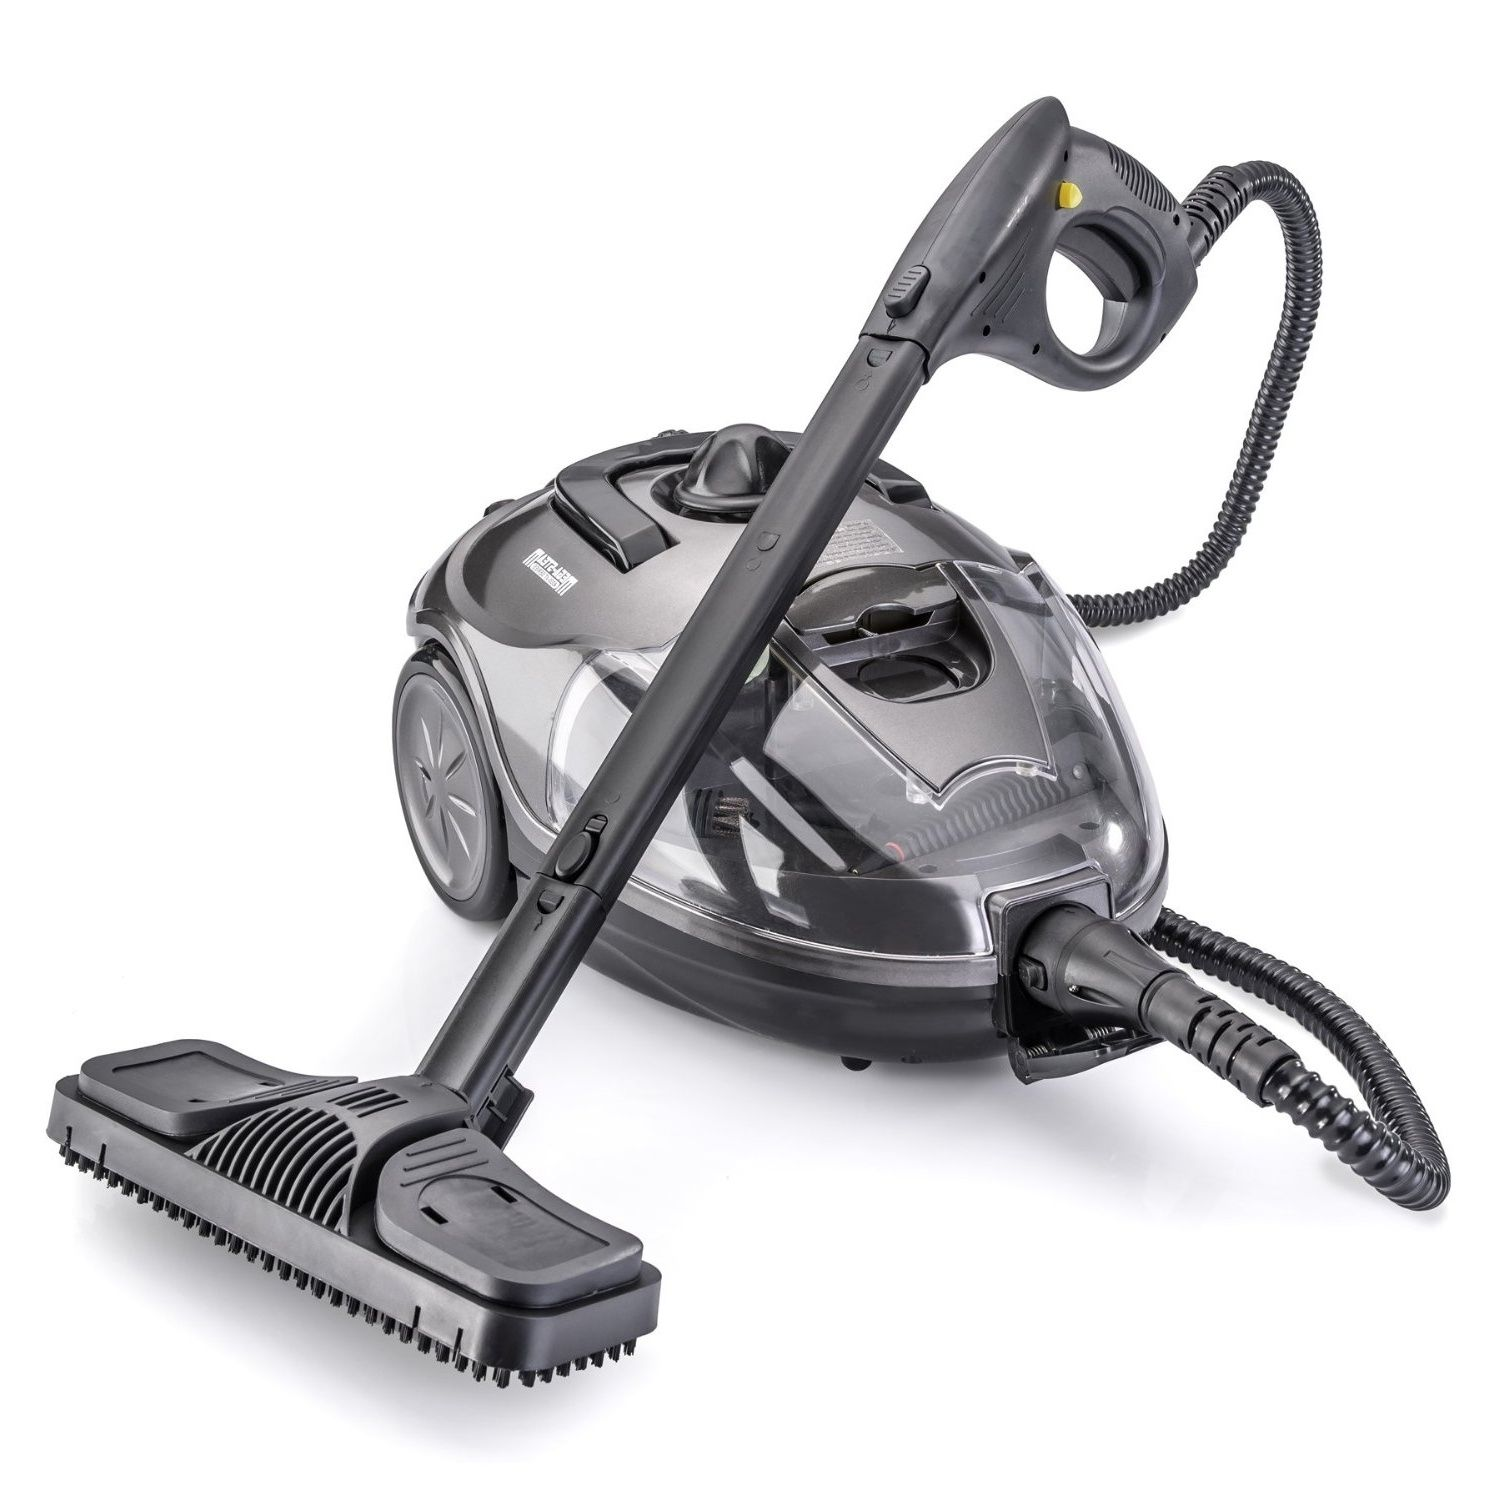 Couch Steam Cleaner Rental With Images Steam Cleaners Cleaners